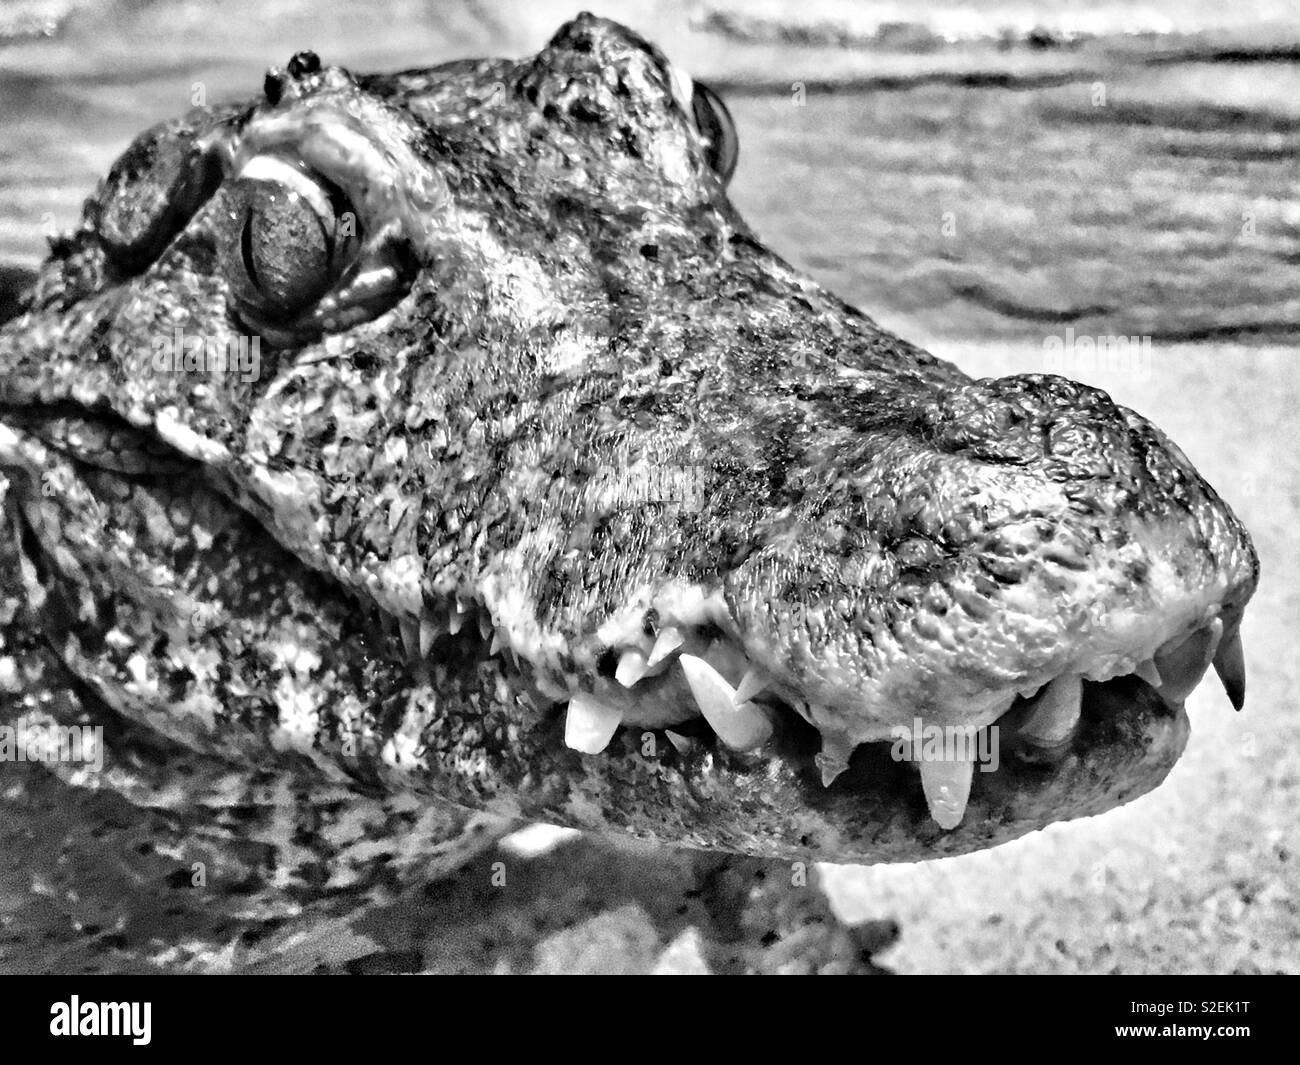 Dwarf caiman with toothy grin and vivid brown eyes with slit pupils smiling at viewer while sitting in water - Stock Image